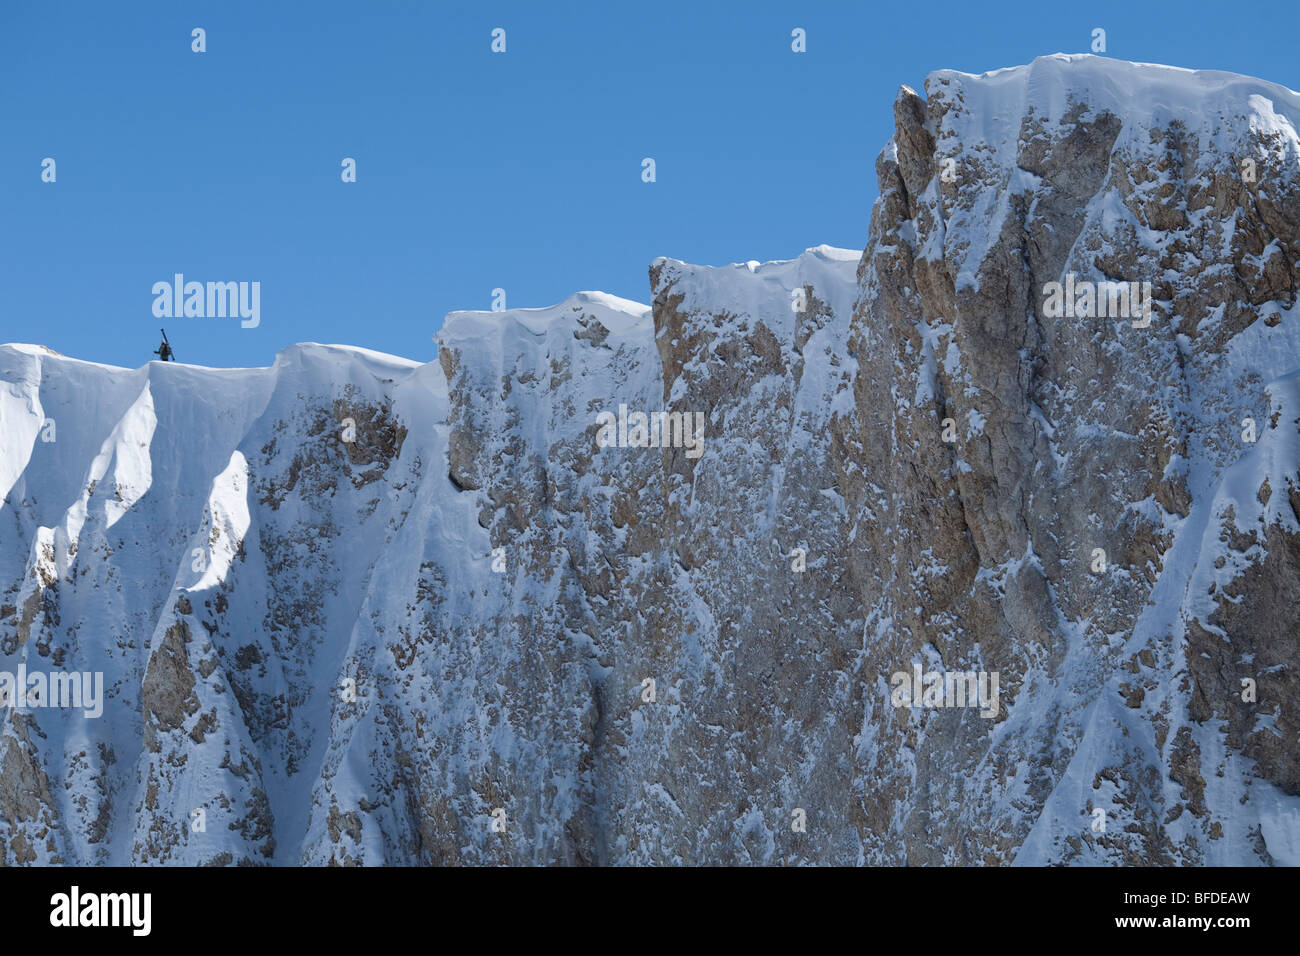 A lone skier hiking on an exposed ridge, Las Lenas, Argentina. - Stock Image